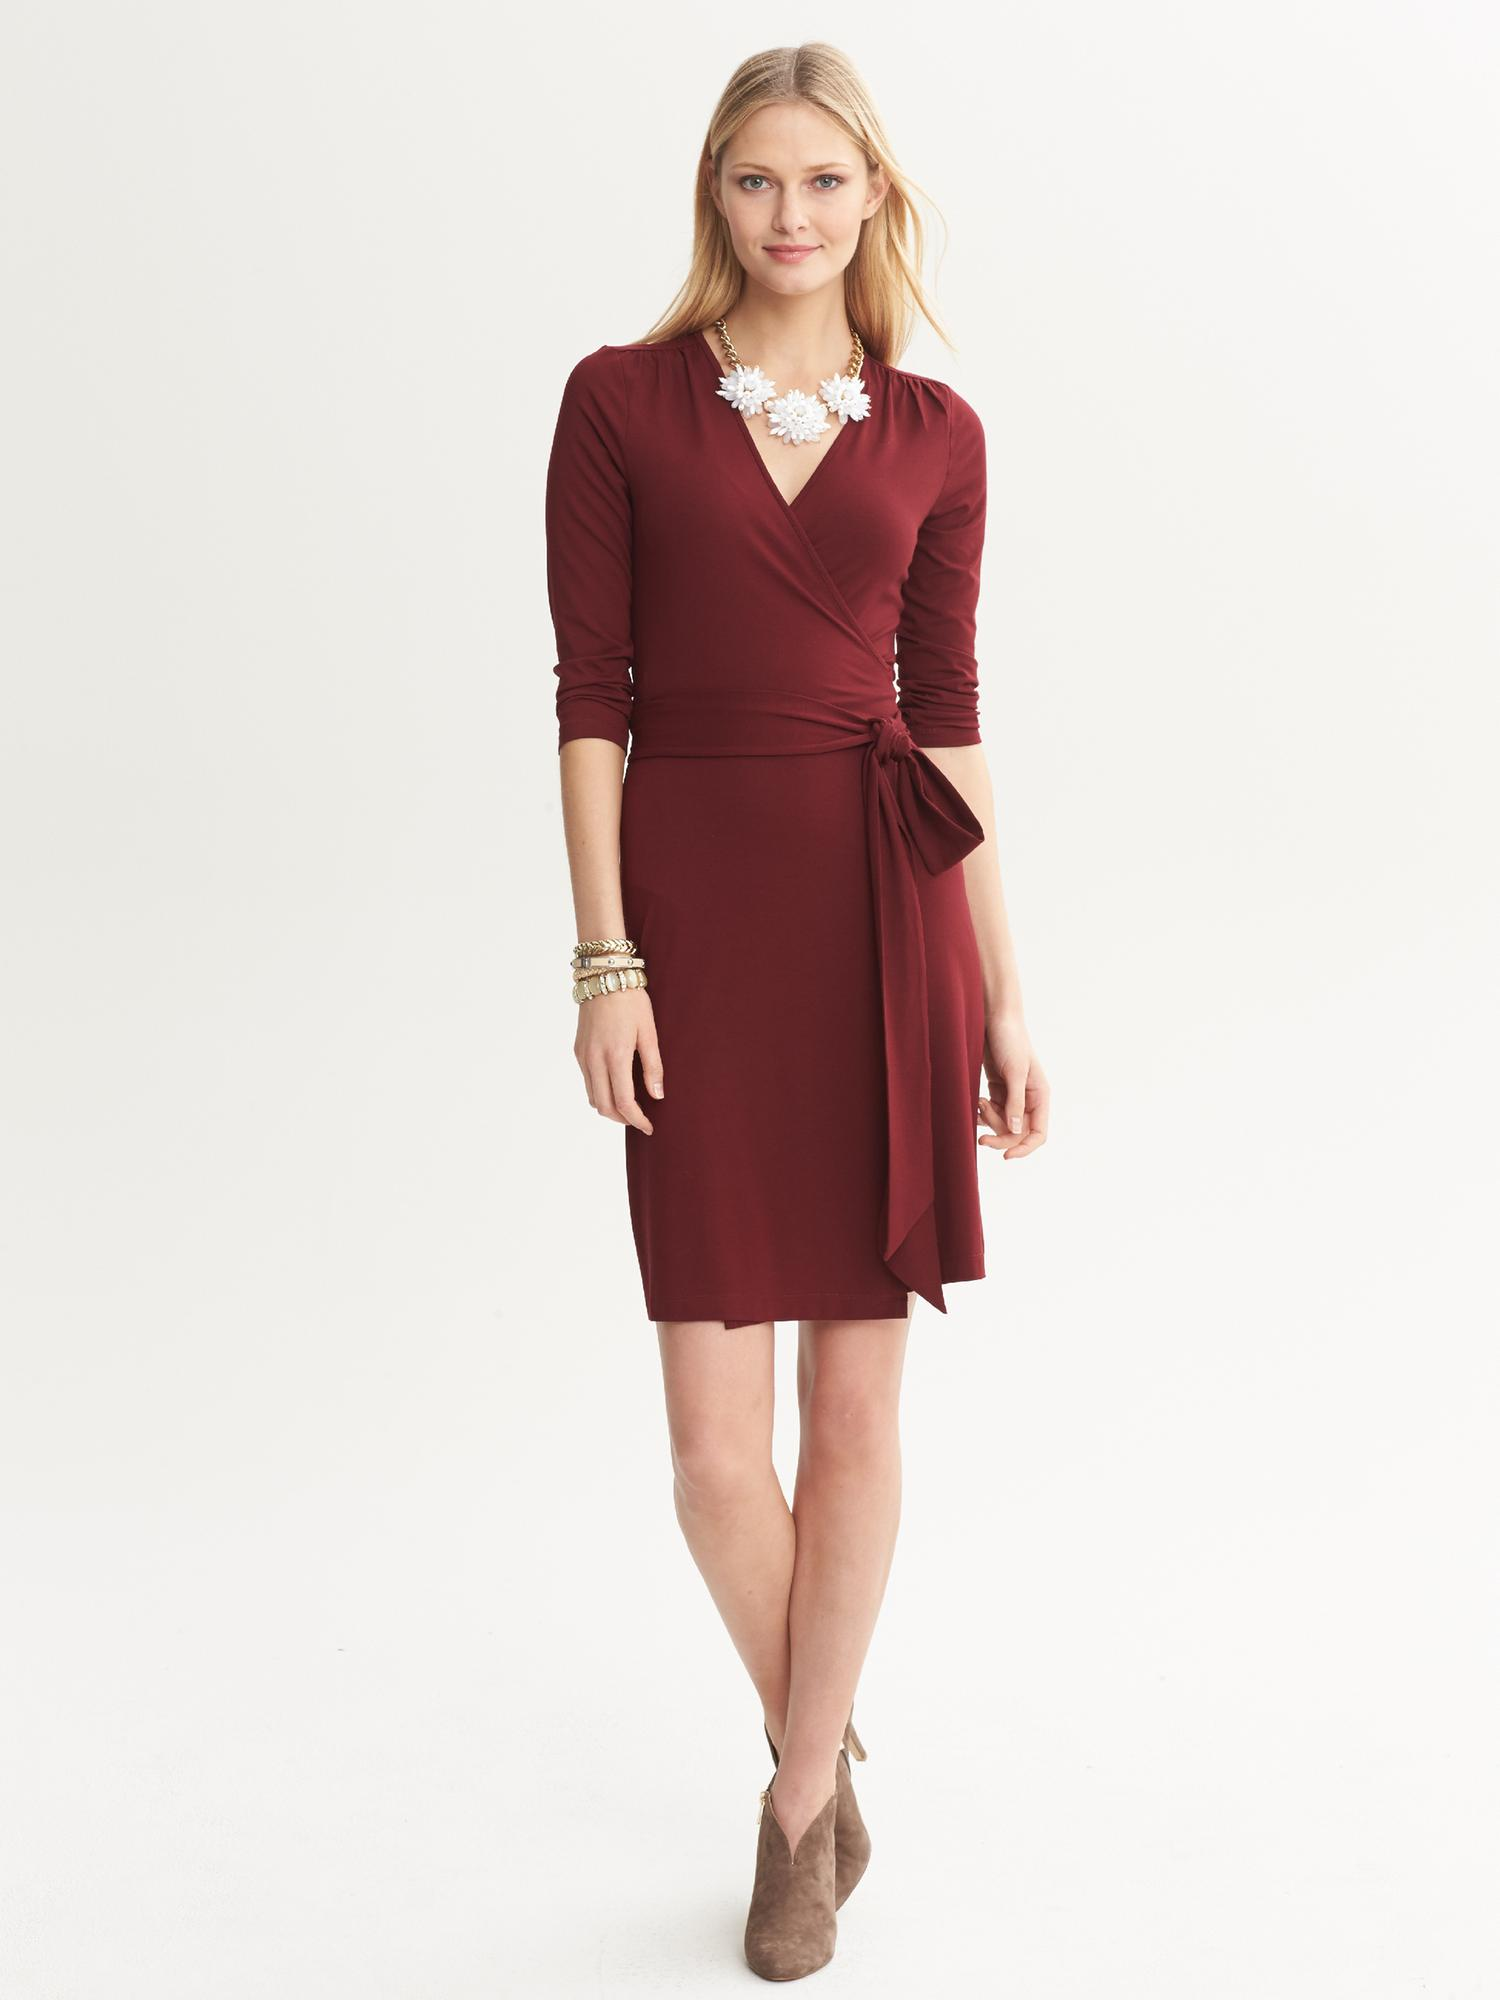 Shop Banana Republic Women's Dresses - Wedding at up to 70% off! Get the lowest price on your favorite brands at Poshmark. Poshmark makes shopping fun, affordable & easy!